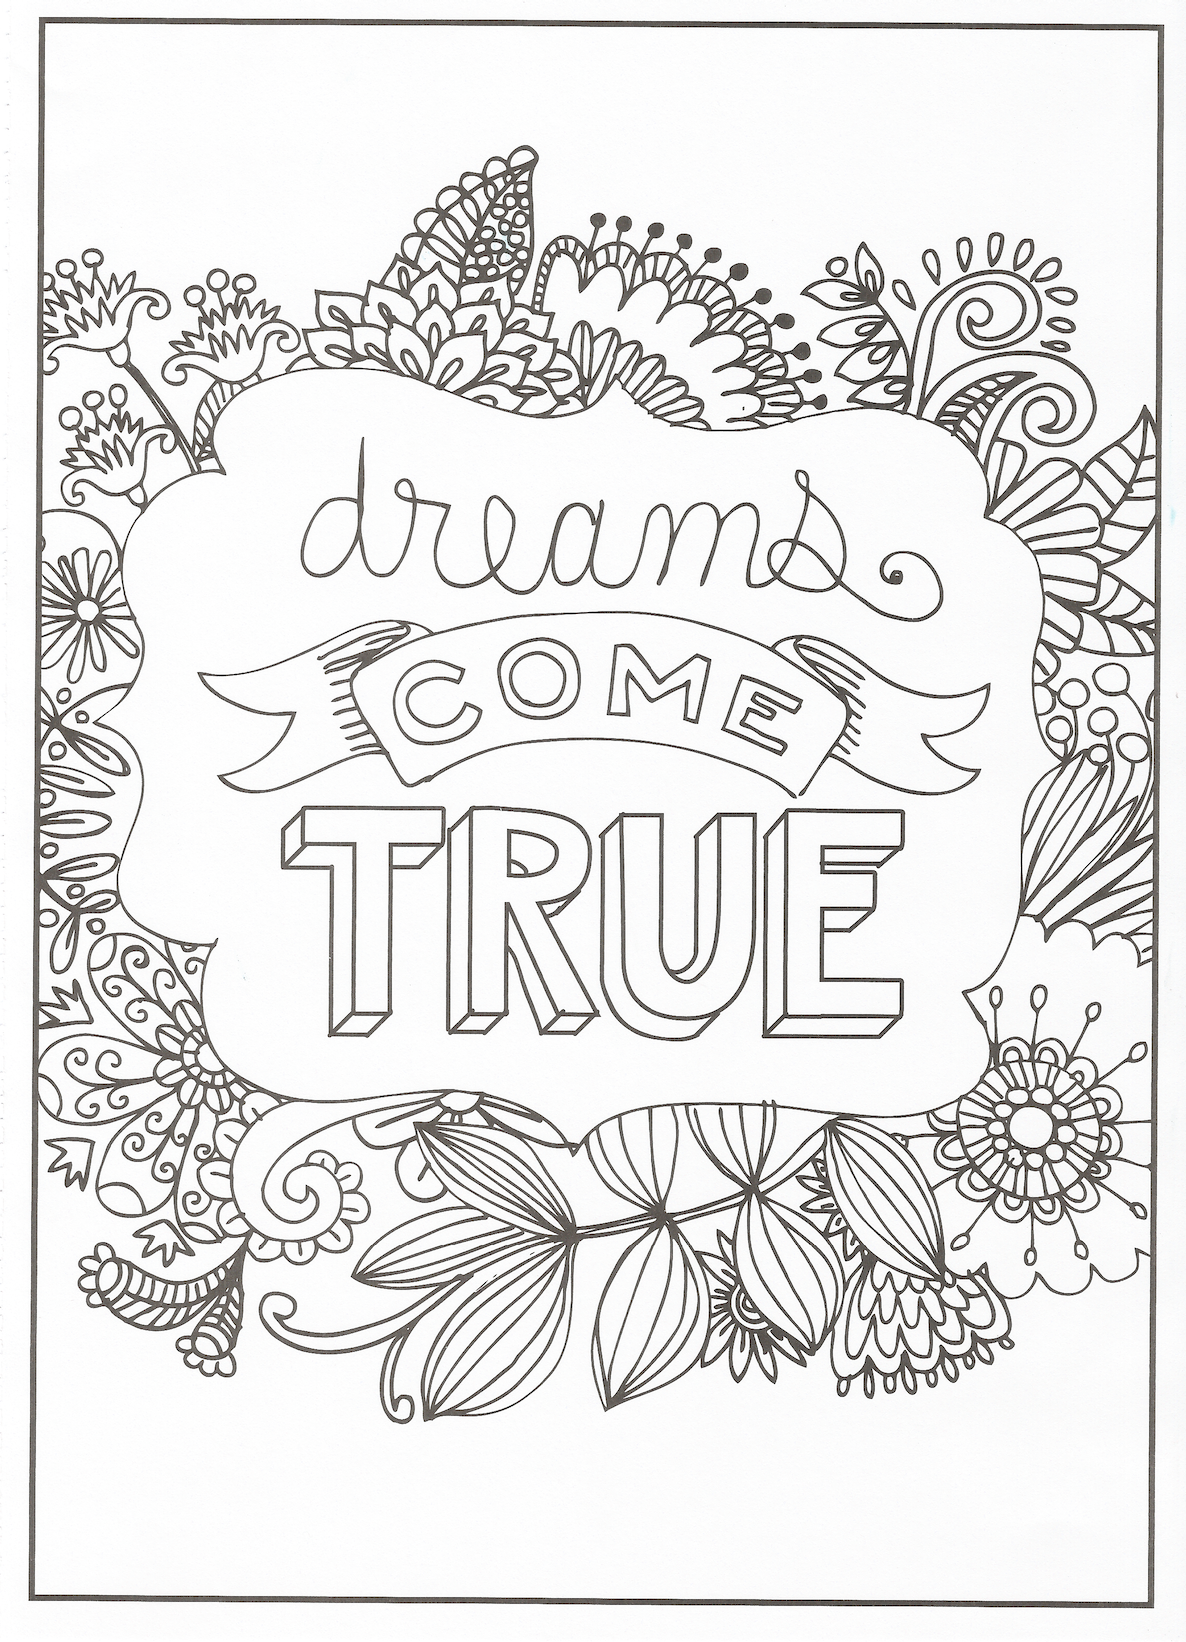 Timeless Creations Creative Quotes Coloring Page Dreams Come True Coloring Pages Quote Coloring Pages Creativity Quotes